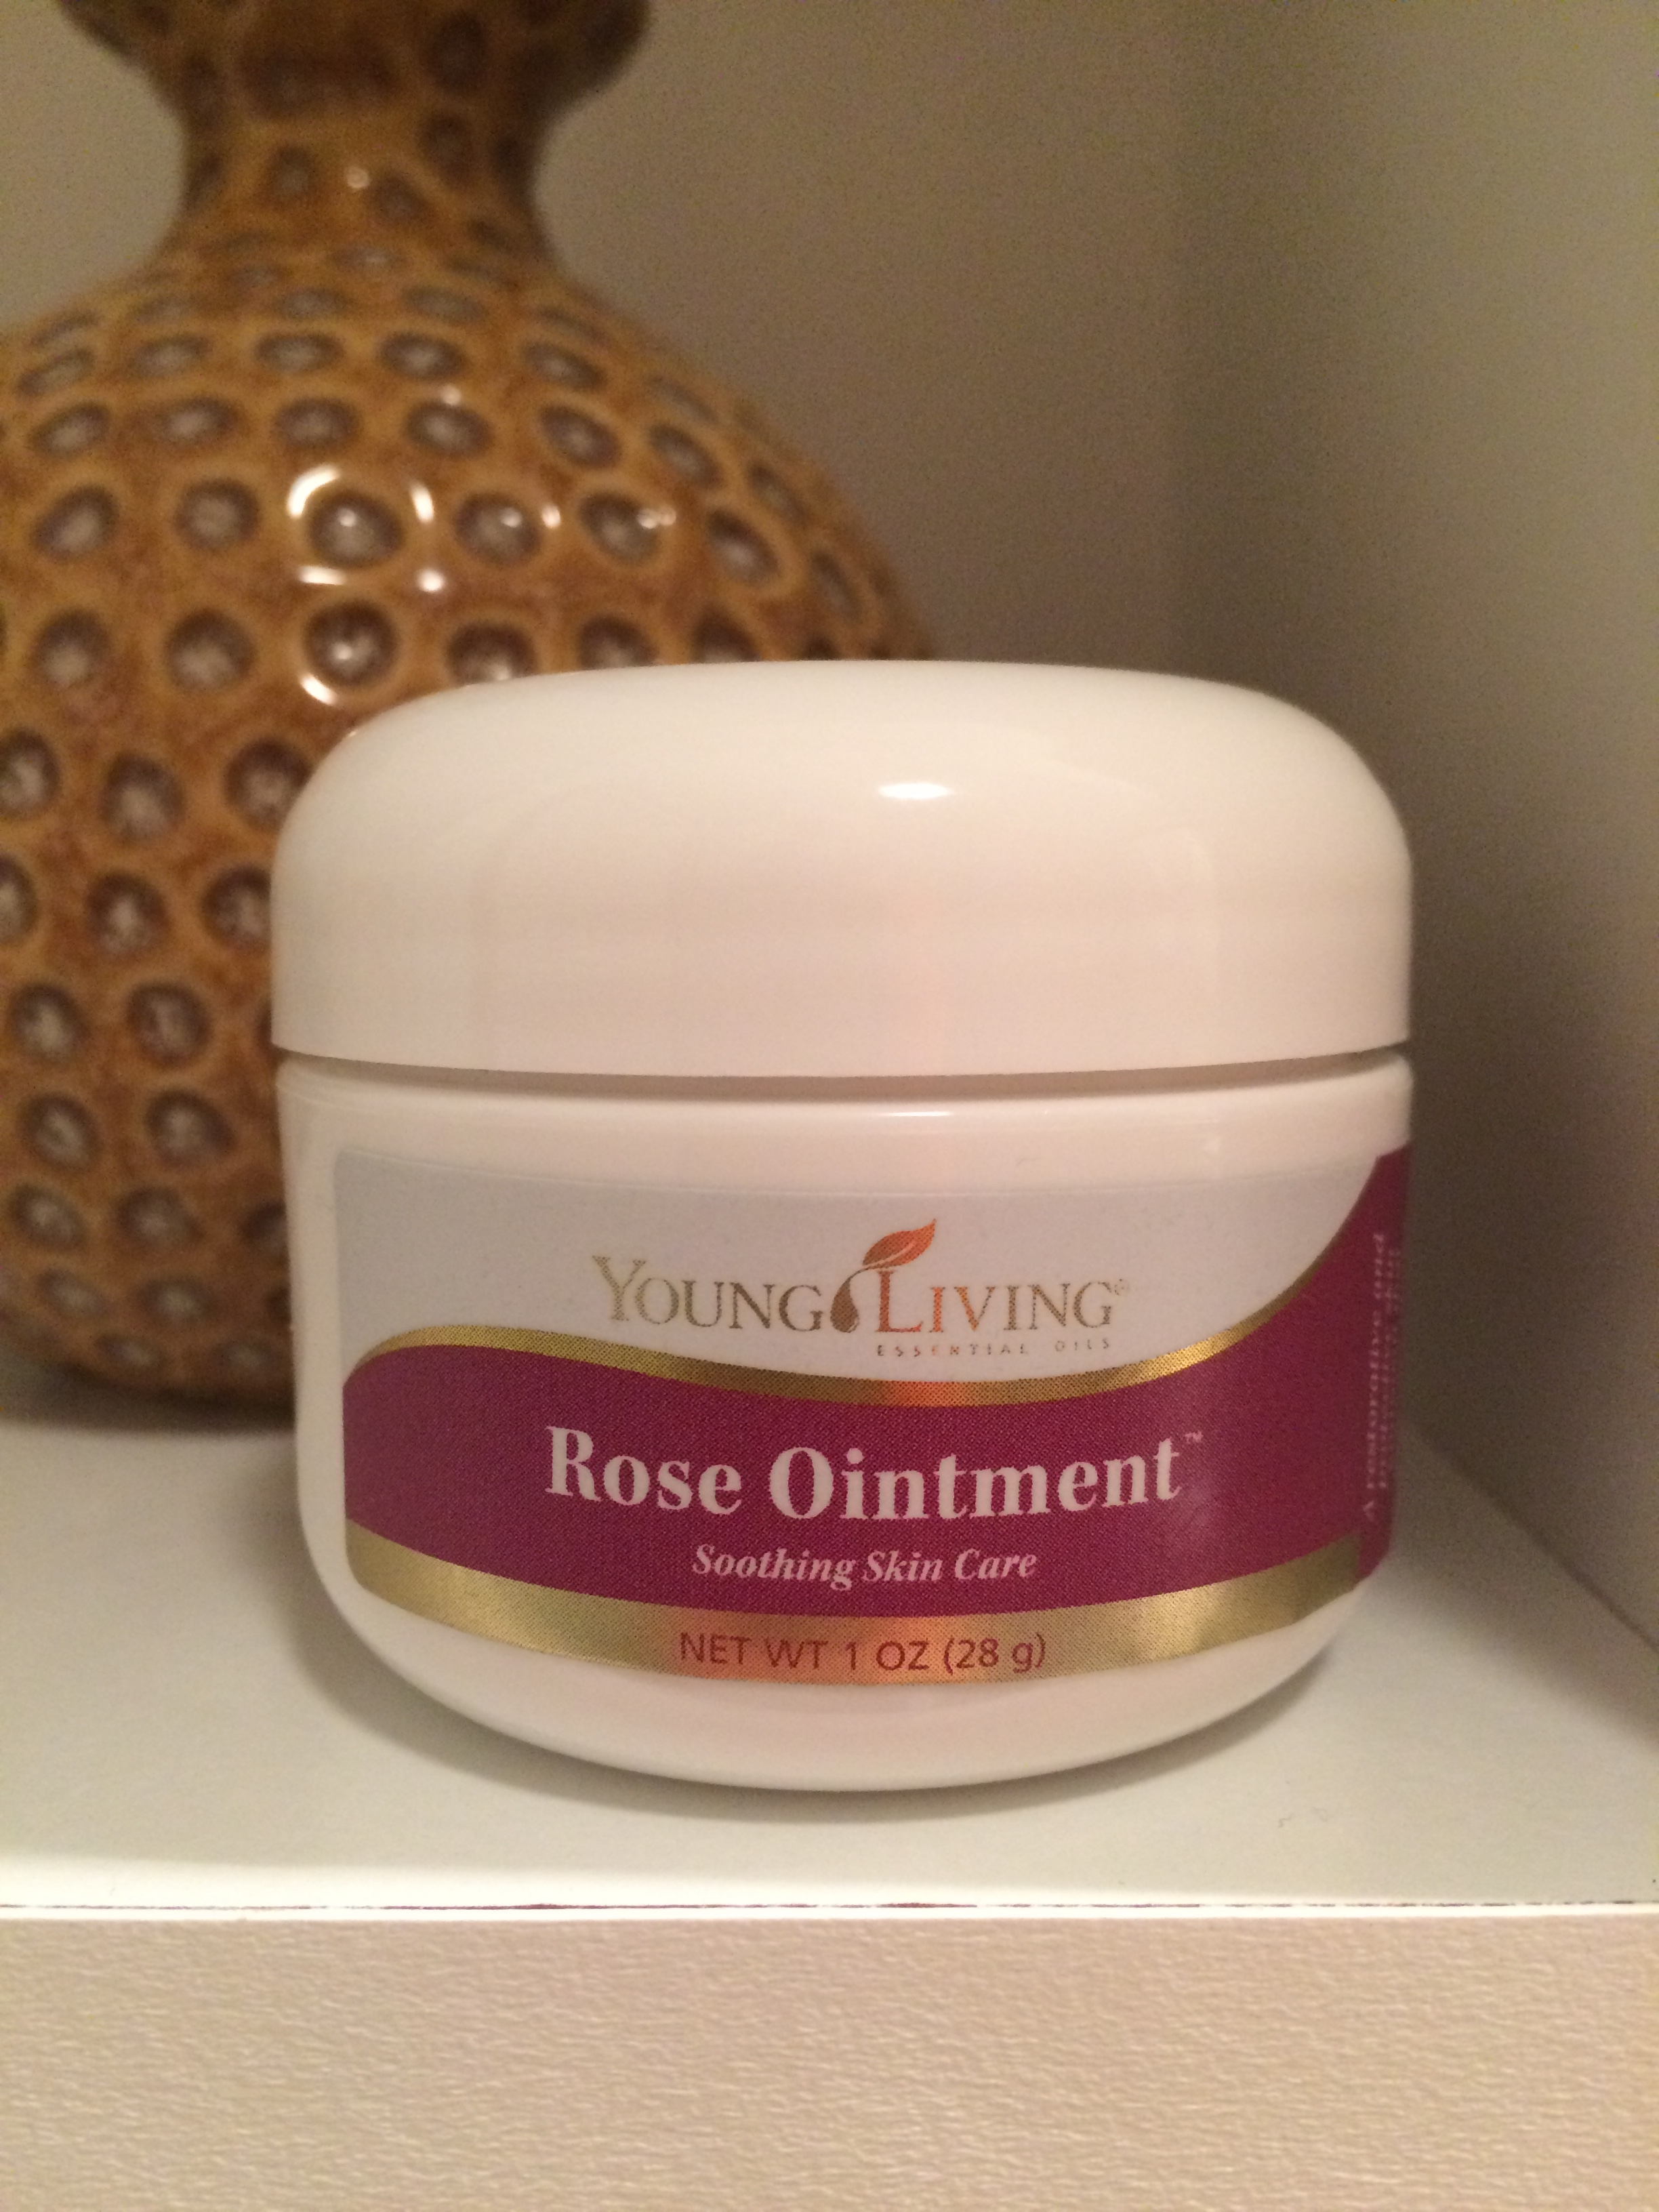 to try rose ointment from Young Living to help relieve my dry skin #9E472D